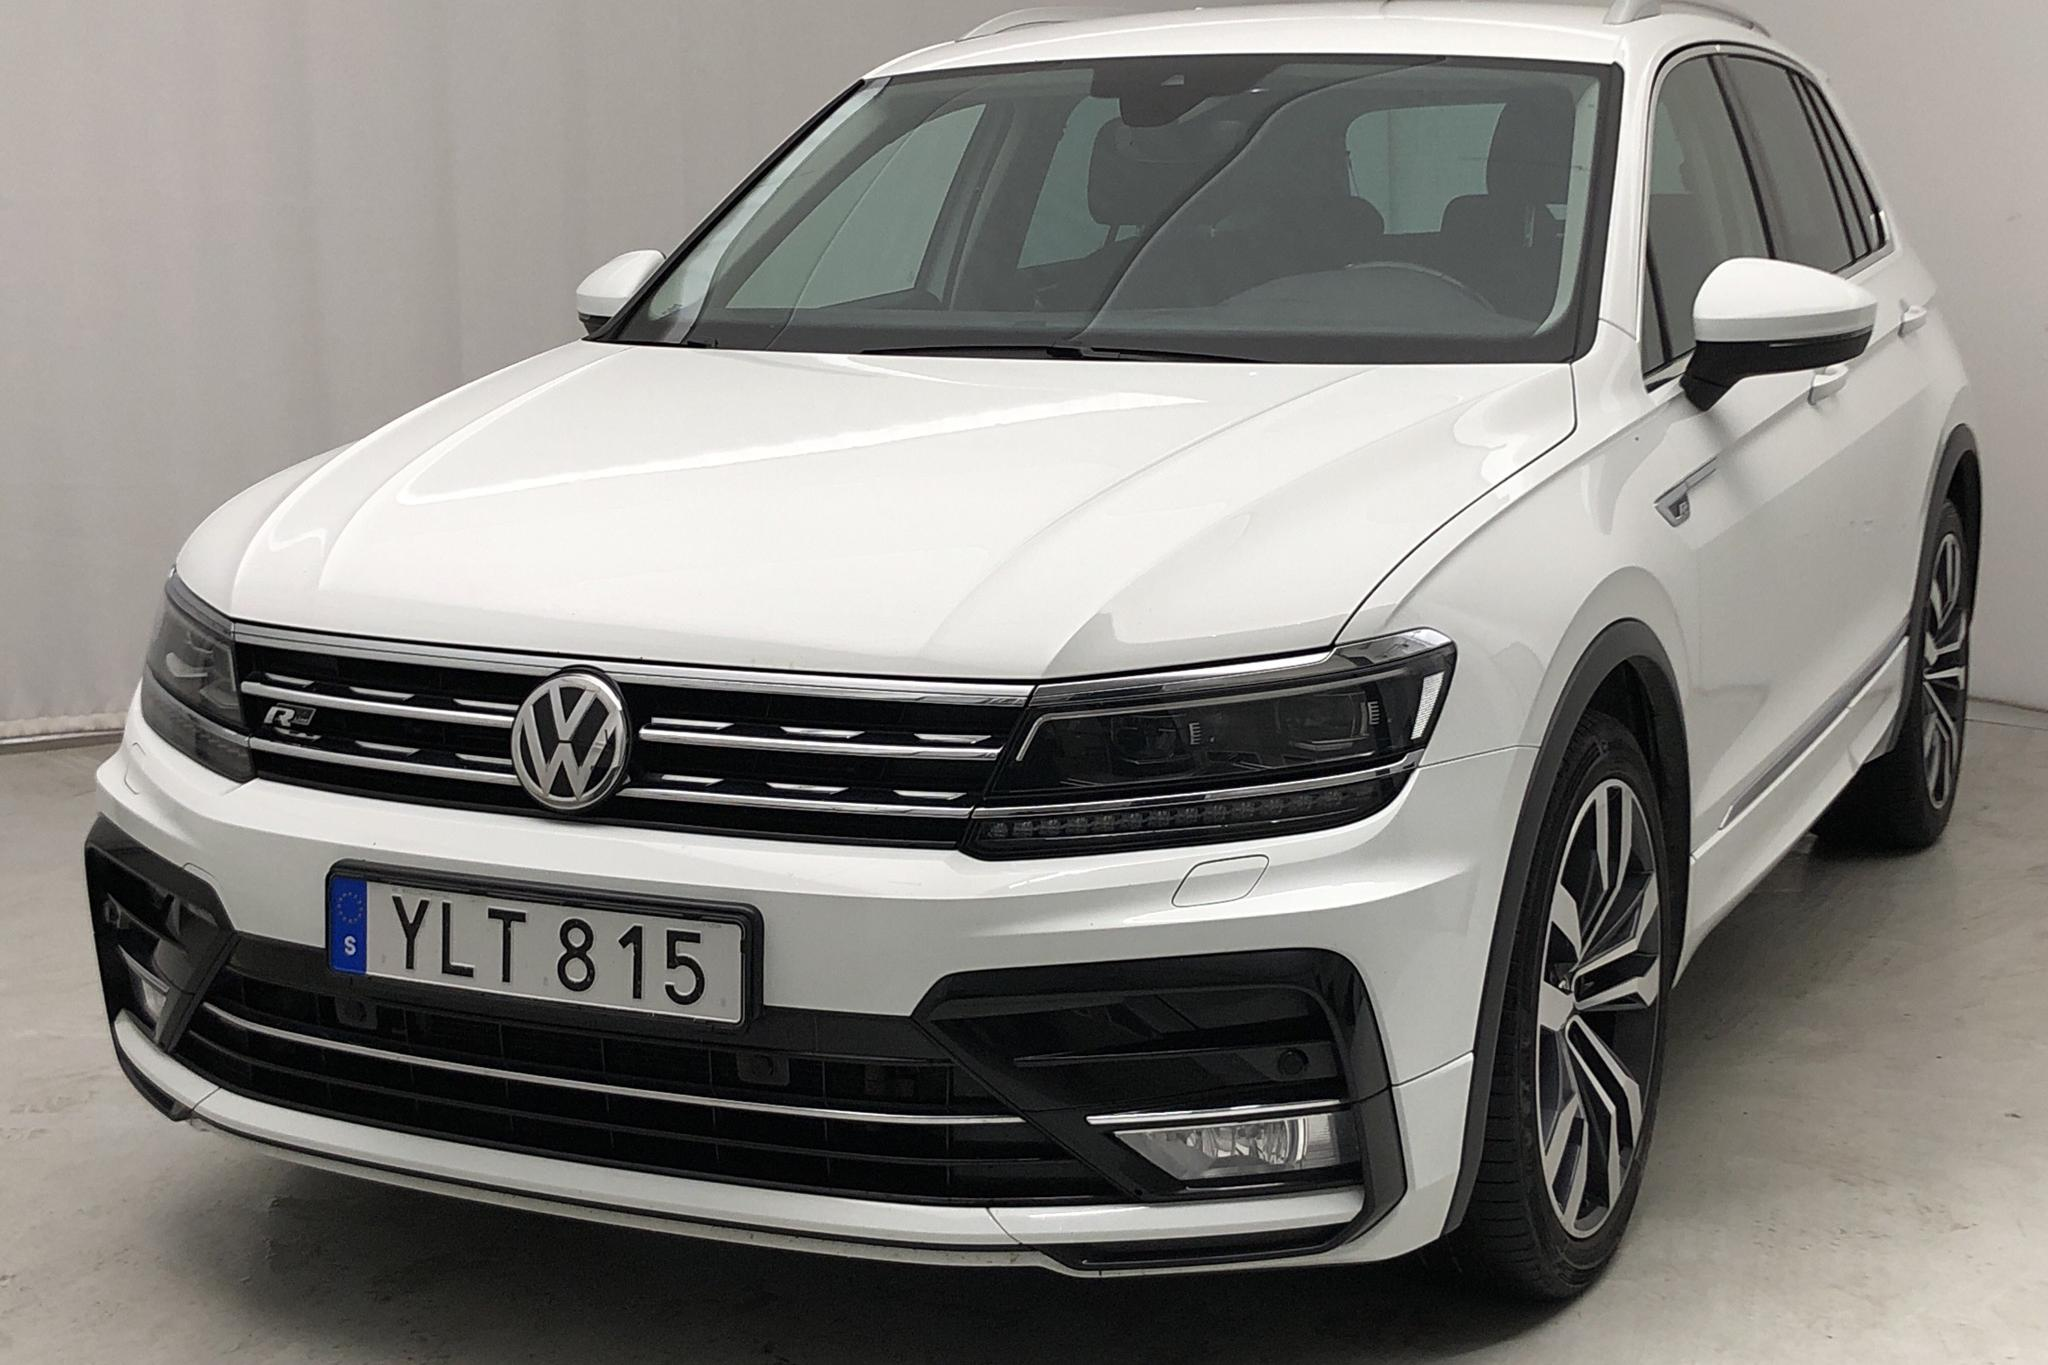 VW Tiguan 2.0 TDI 4MOTION (190hk) - 0 km - Automatic - white - 2017